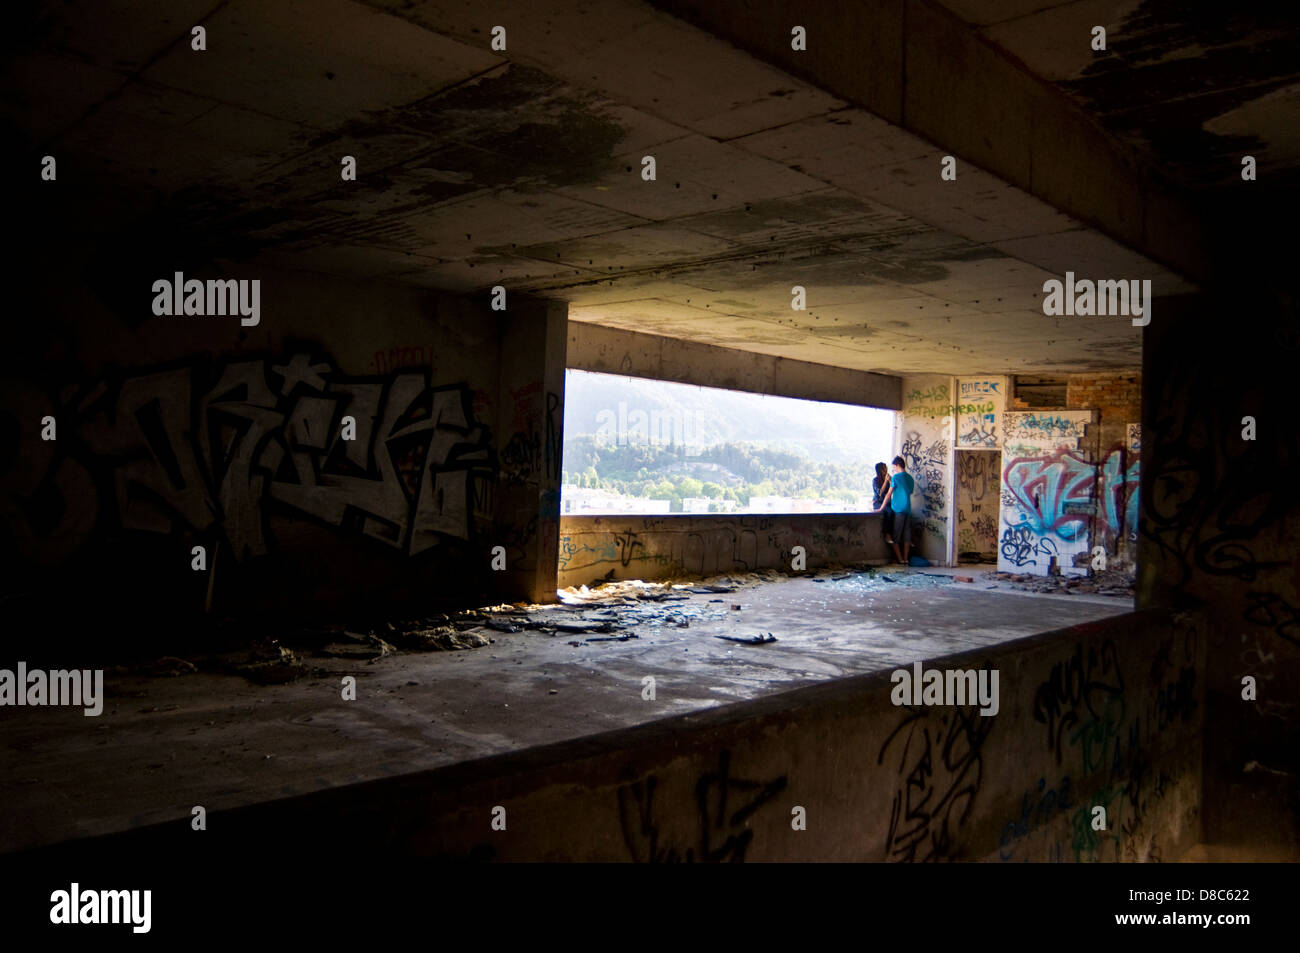 Young couple in graffitied and derelict Stara Banka Staklena building in Mostar in Bosnia Herzegovina Stock Photo